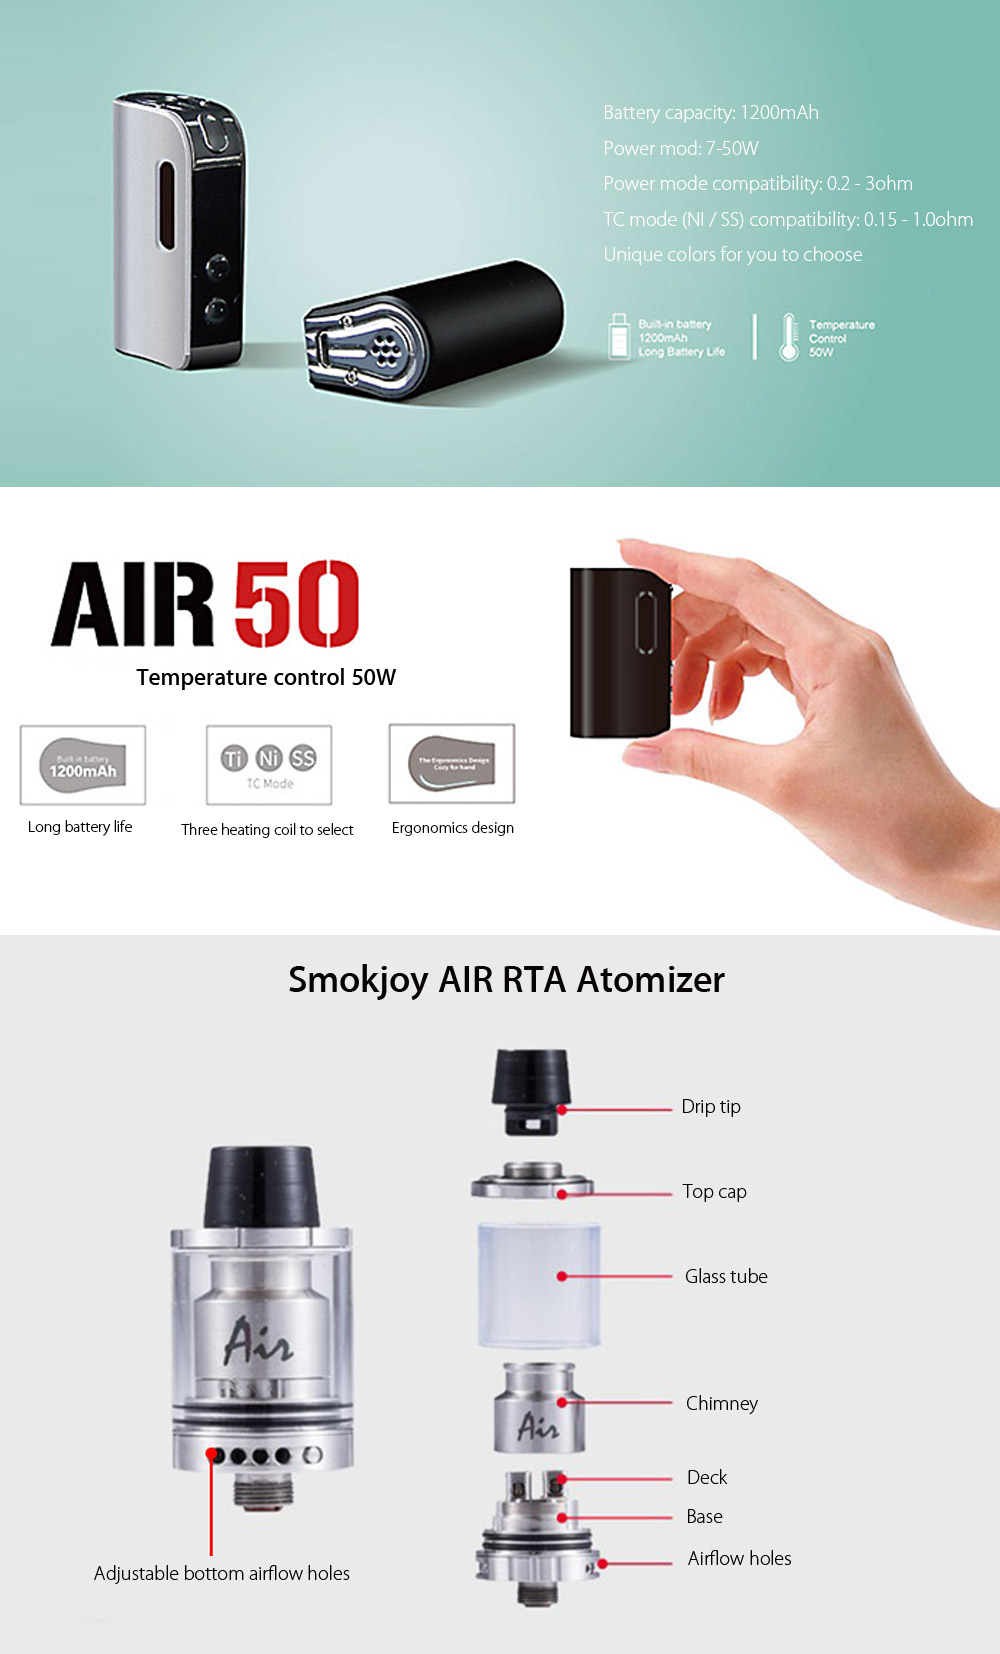 Original Smokjoy AIR 50 TC Starter Kit with 1200mAh / America Imported CPU / Conformal Coating / 7 - 50W / 212 - 600F / Multiple TC Modes / 1.8ml RTA for E Cigarette